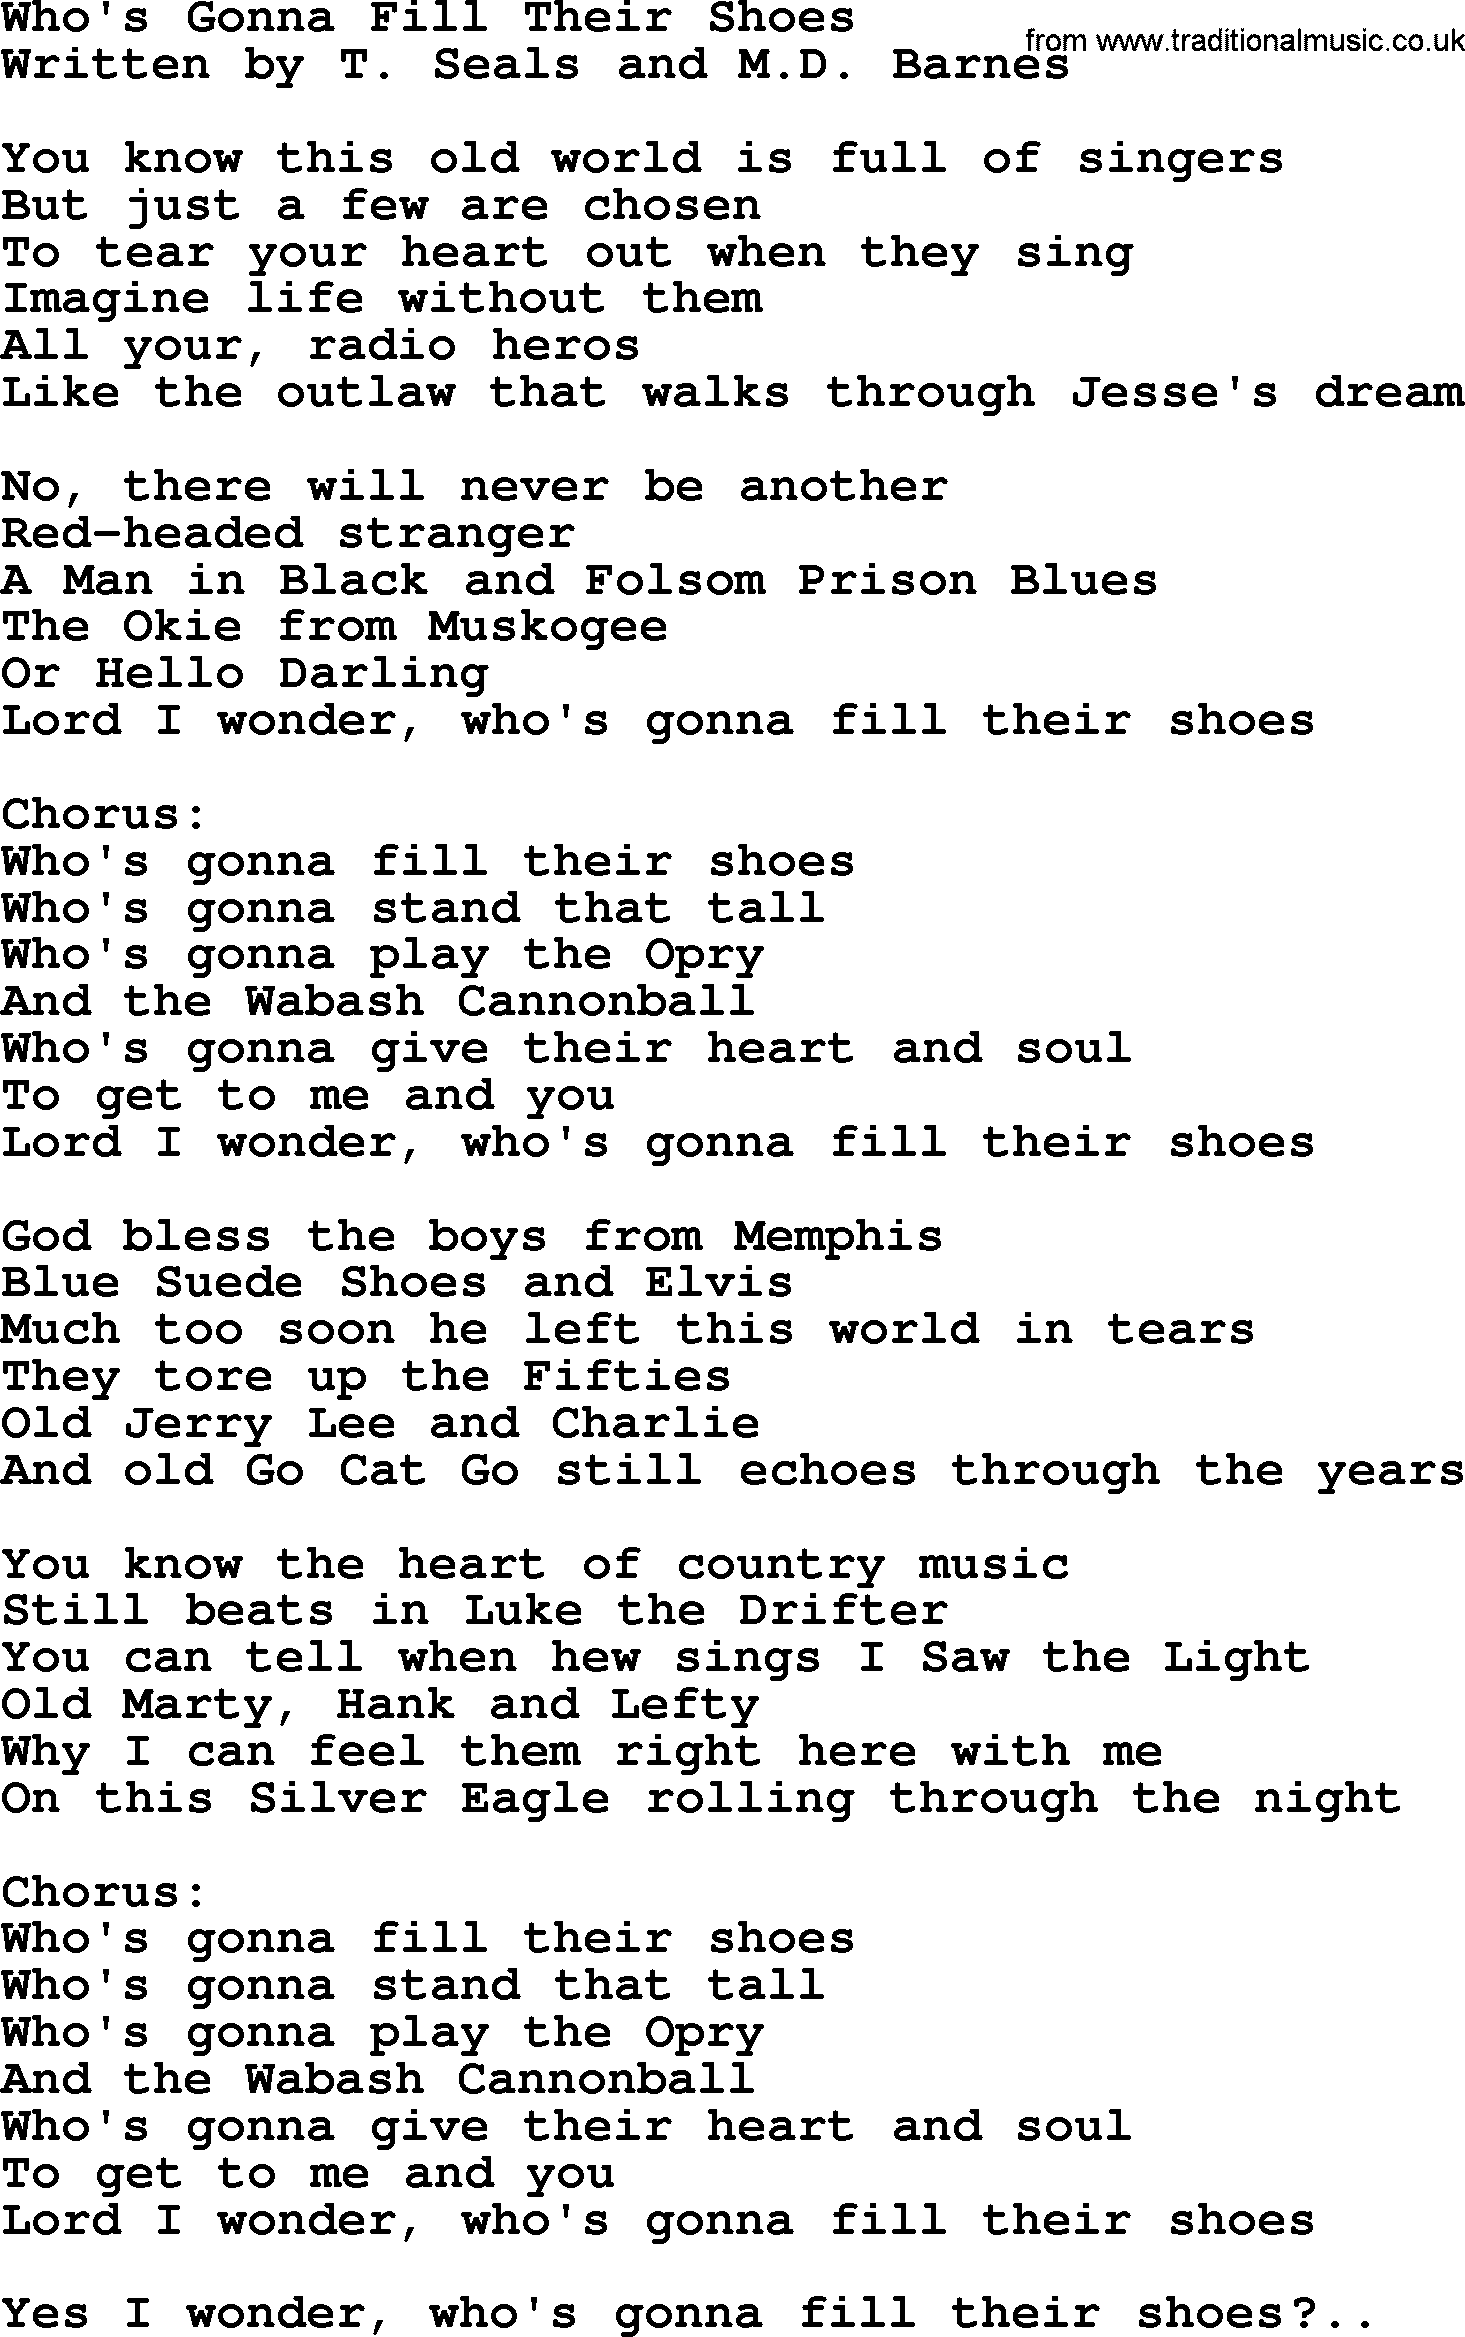 the christmas shoes lyrics shoes for yourstyles - Song Christmas Shoes